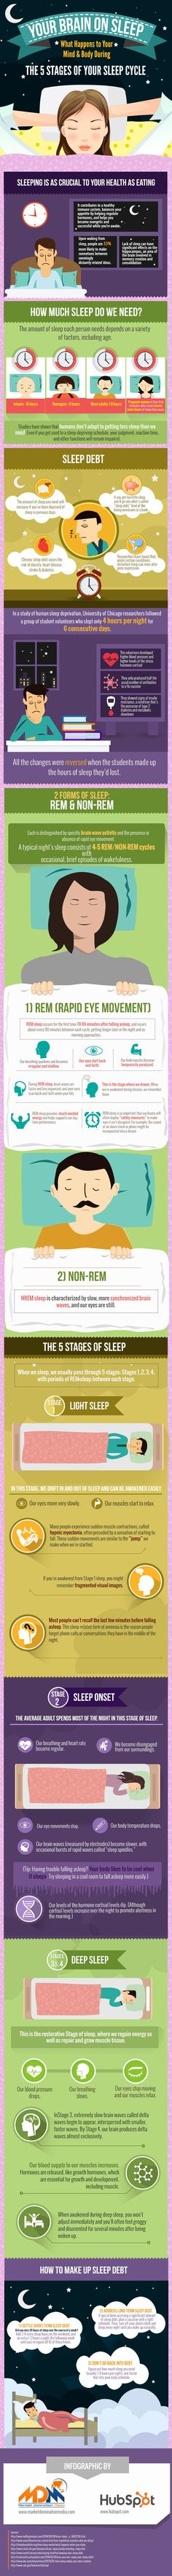 Your Brain on Sleep: What Happens To the Mind & Body During the 5 Stages of Your Sleep Cycle [Infographic], via @HubSpot